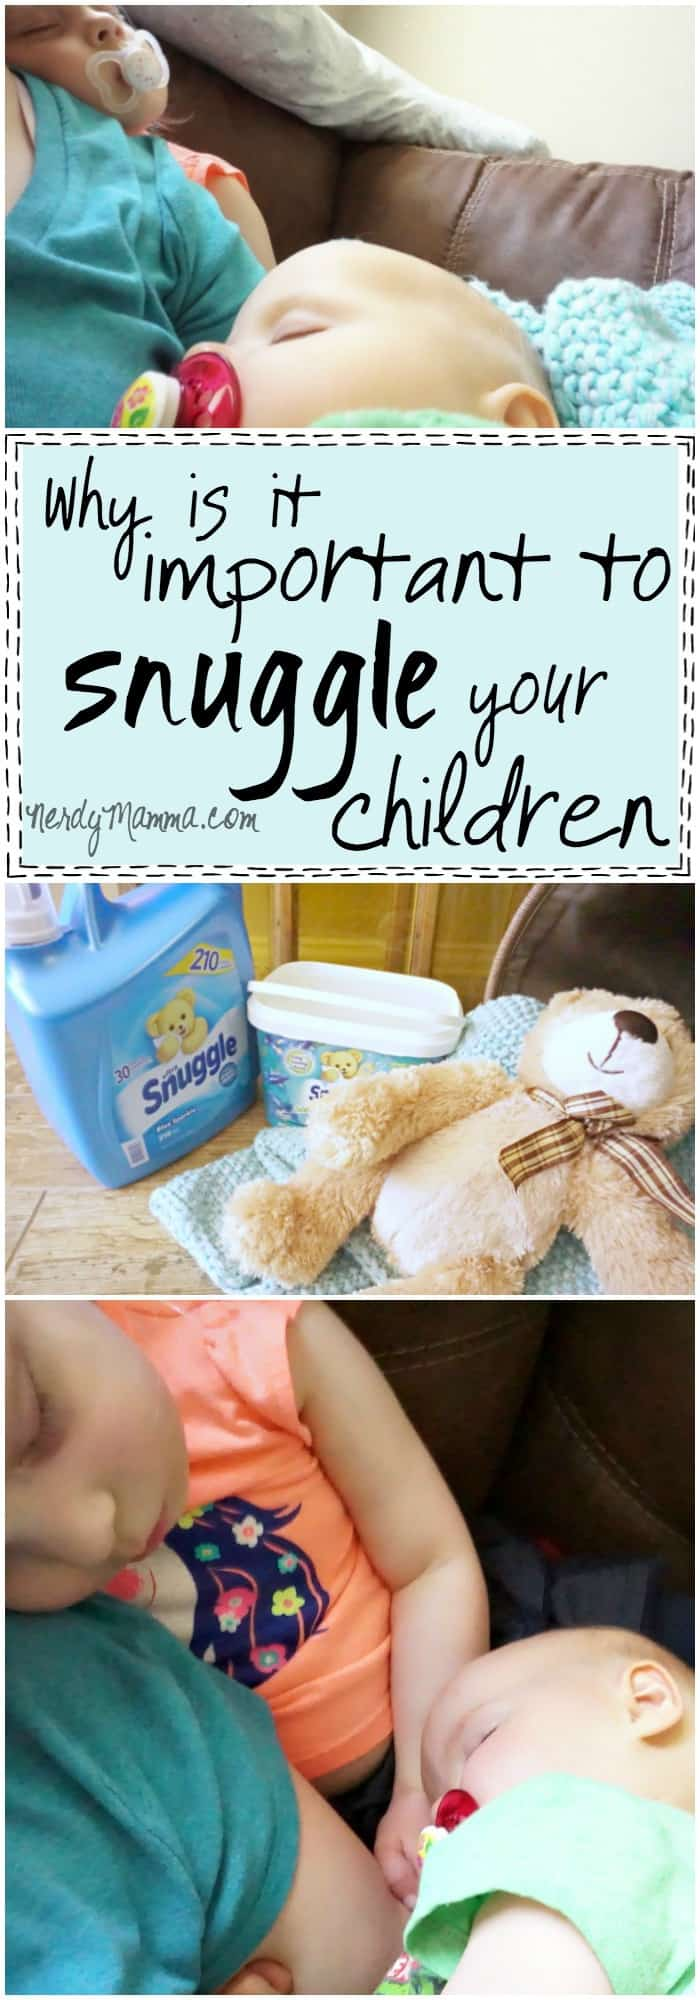 I had no idea why it is so important to cuddle your kids...I mean, I didn't know there was like an end to civilization if I didn't...LOL!